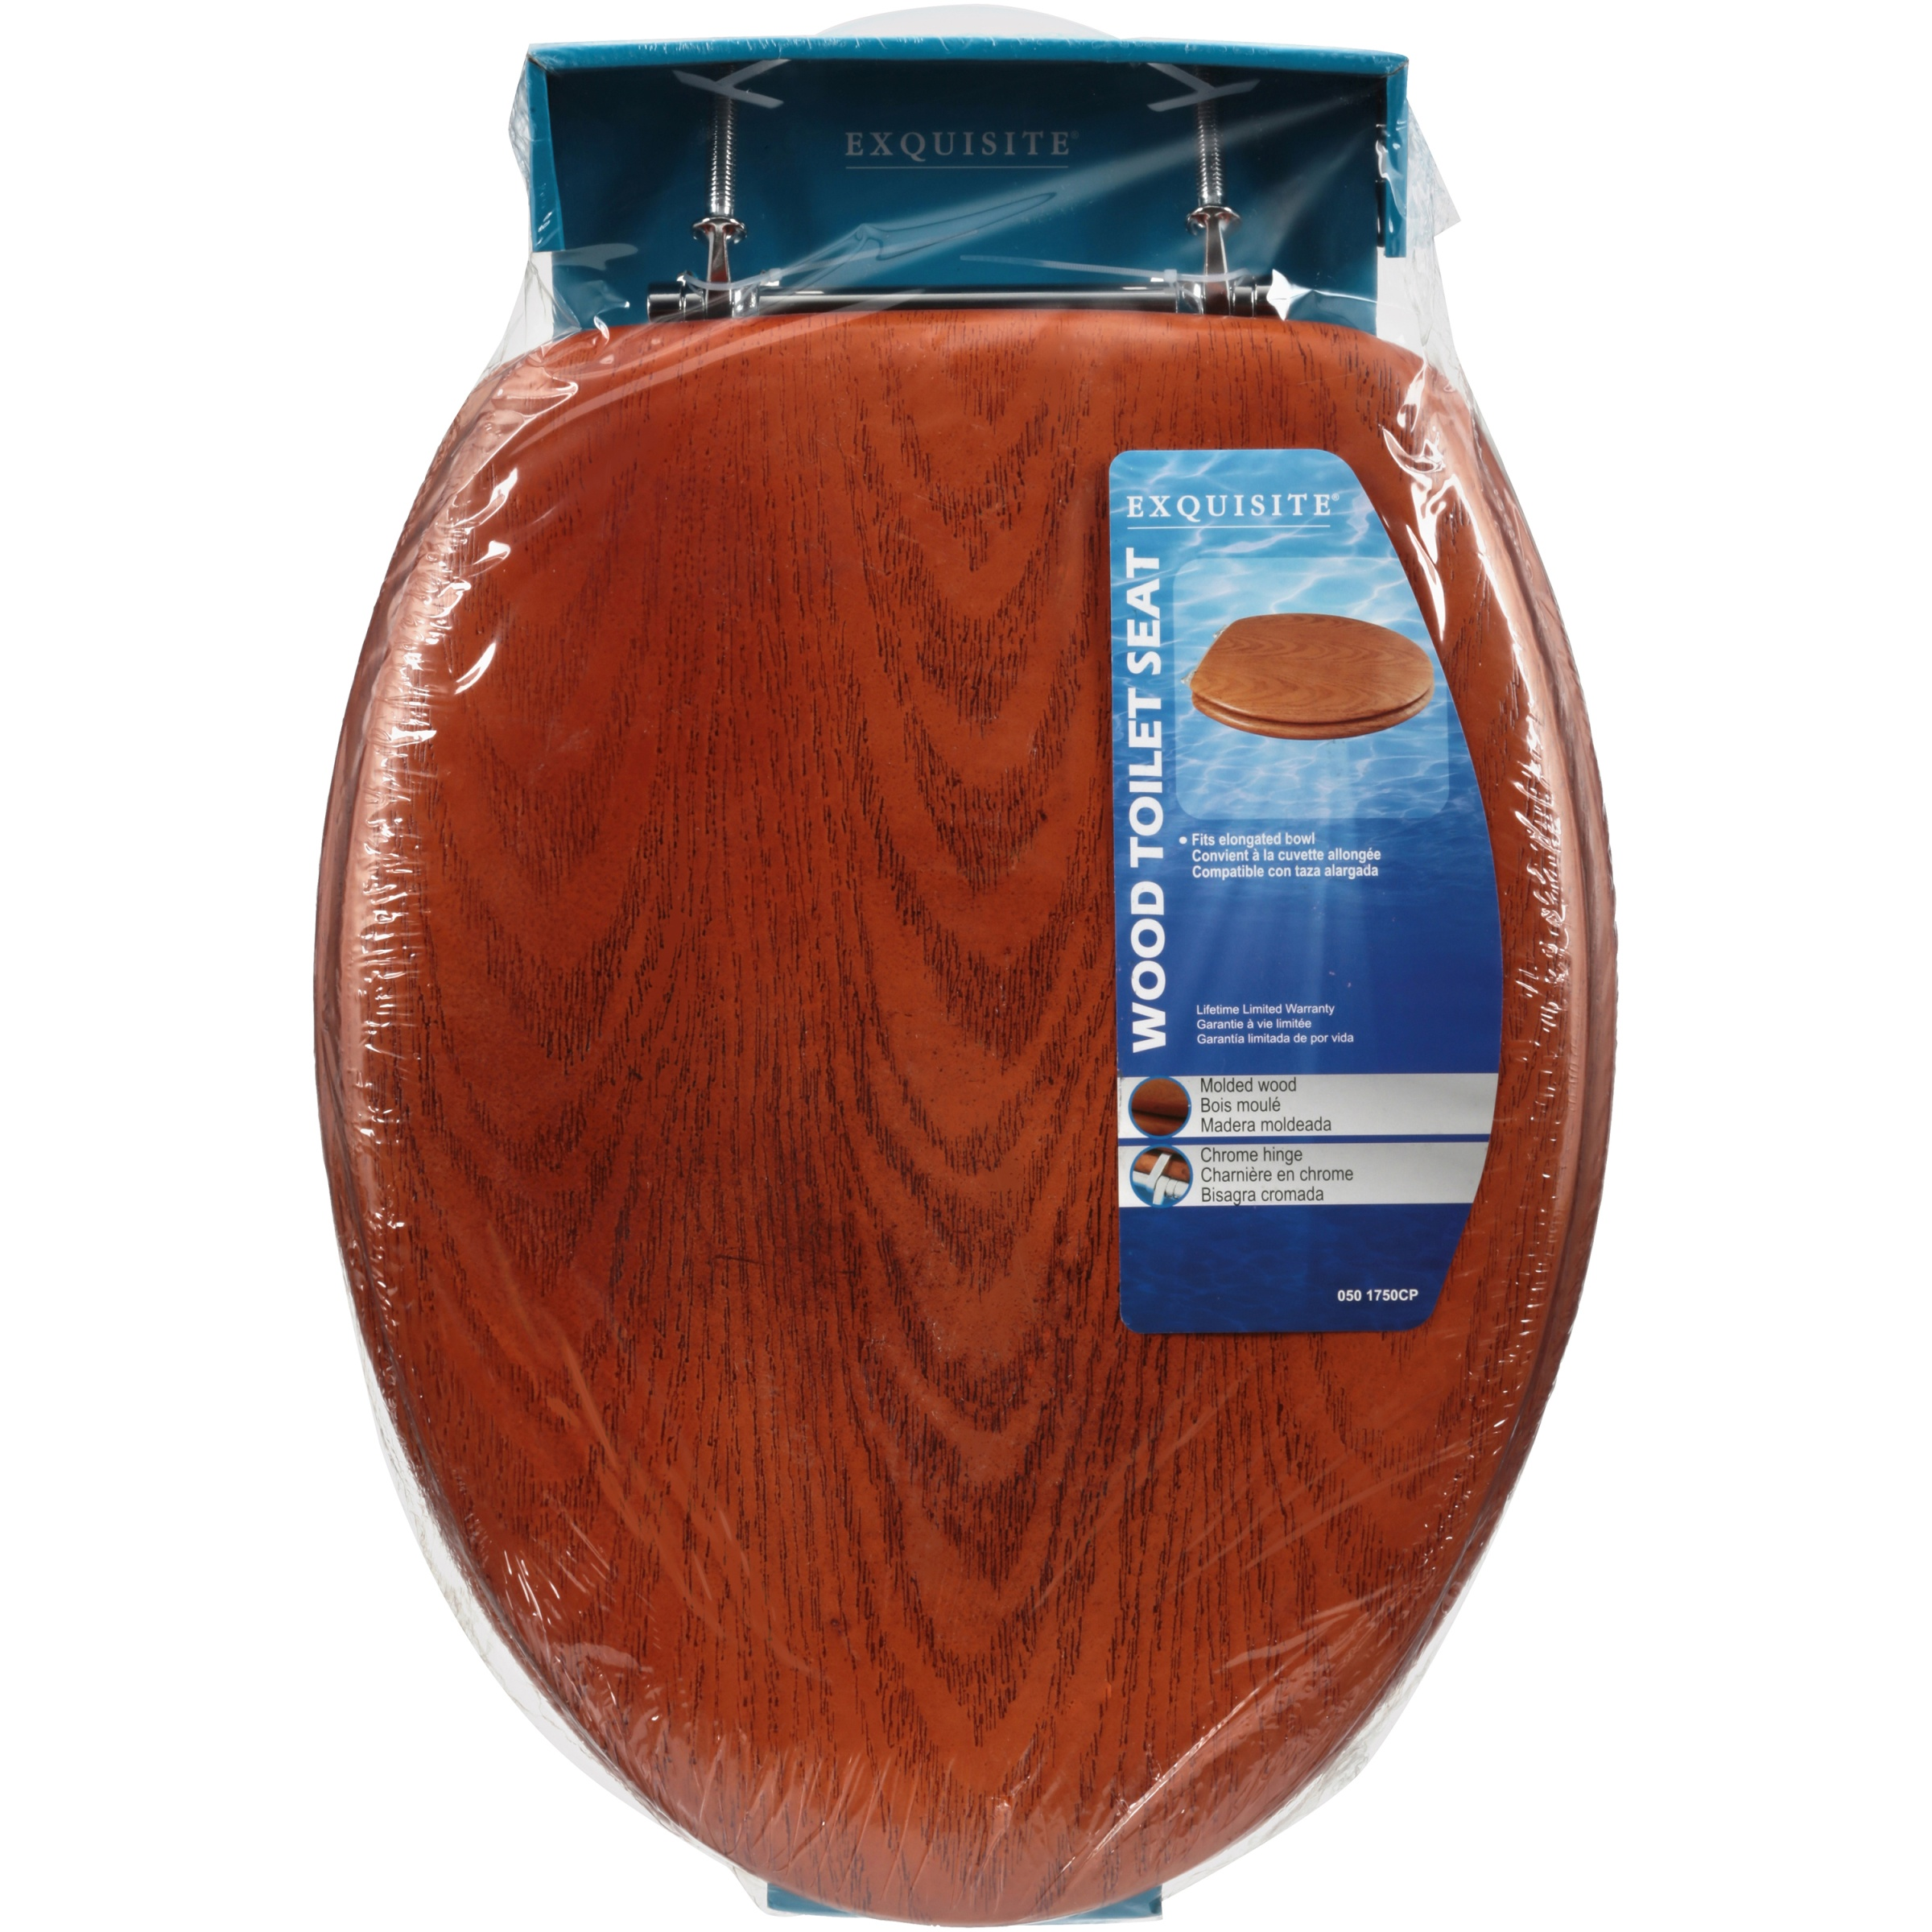 Groovy Exquisite Wood Toilet Seat Sleeve Gmtry Best Dining Table And Chair Ideas Images Gmtryco